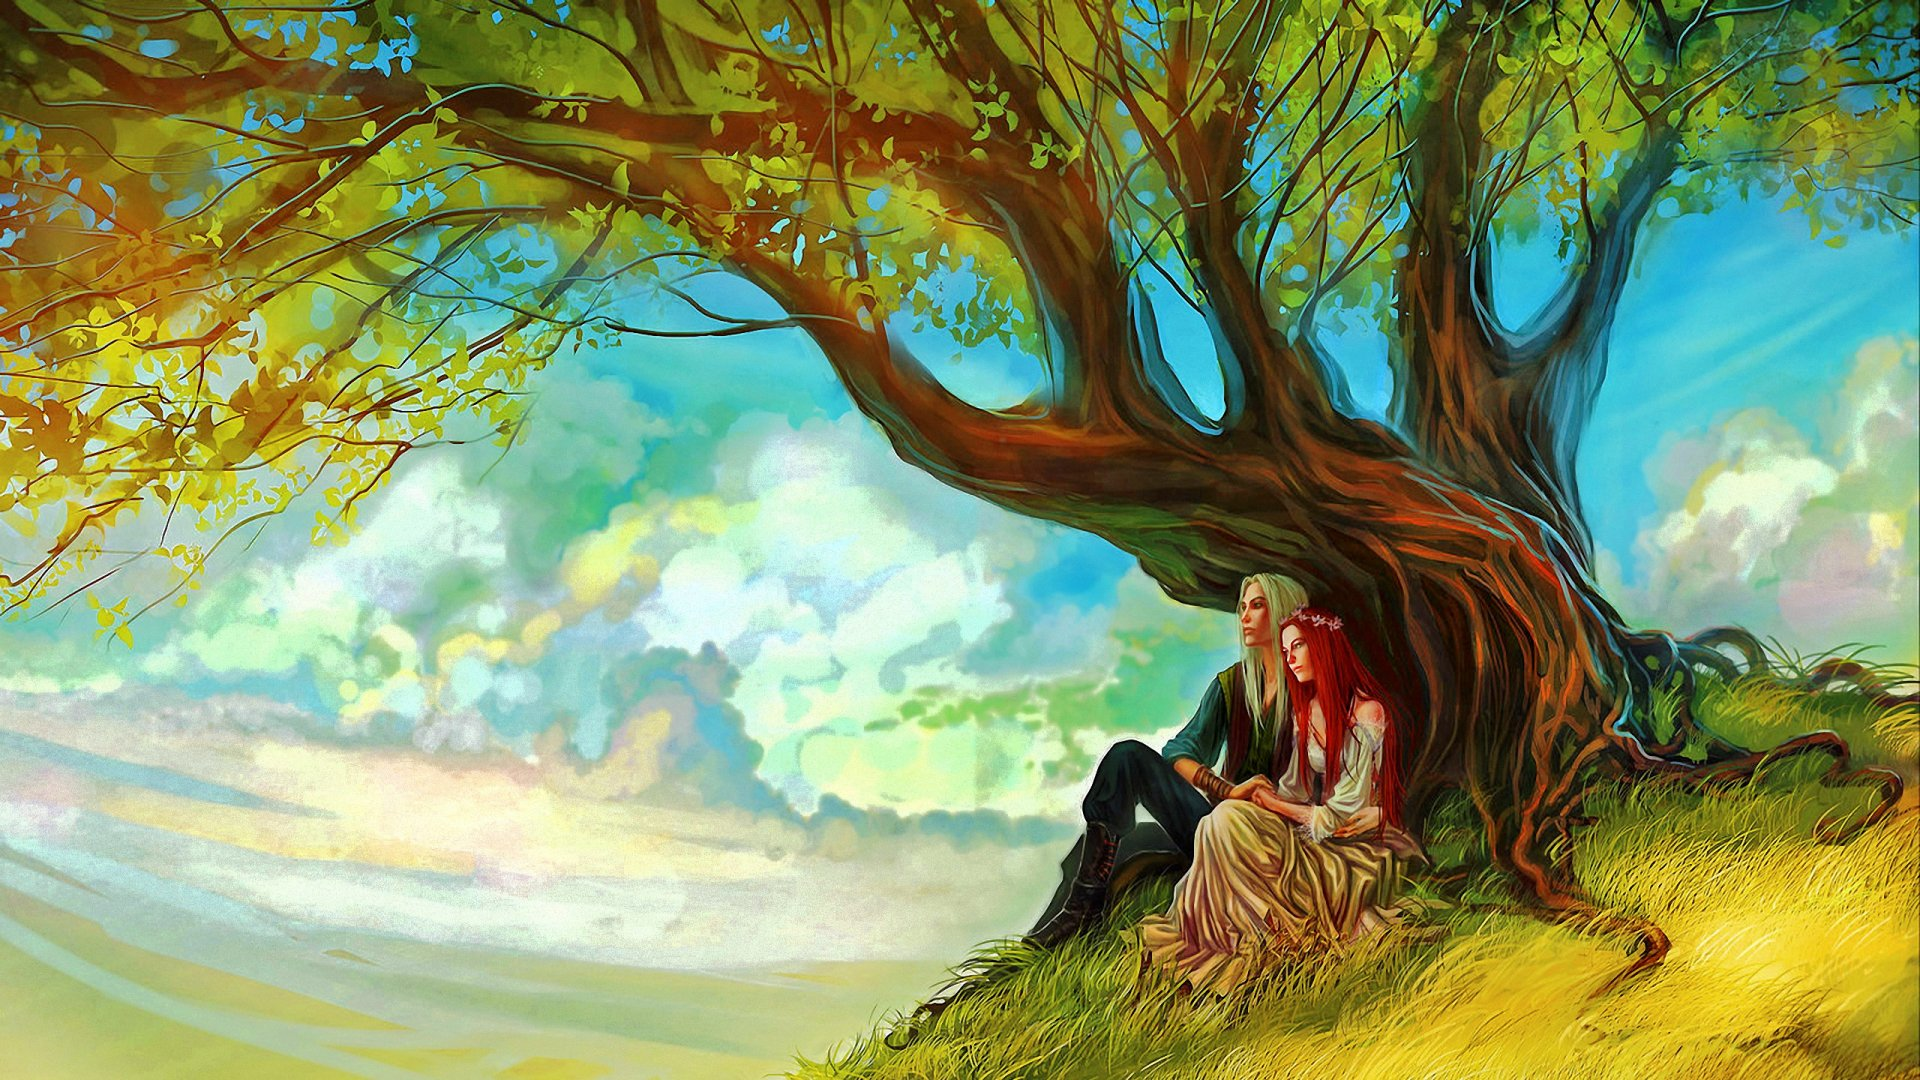 Love couple Painting Wallpaper : Elf Lovers Full HD Wallpaper and Background Image 2560x1440 ID:653553